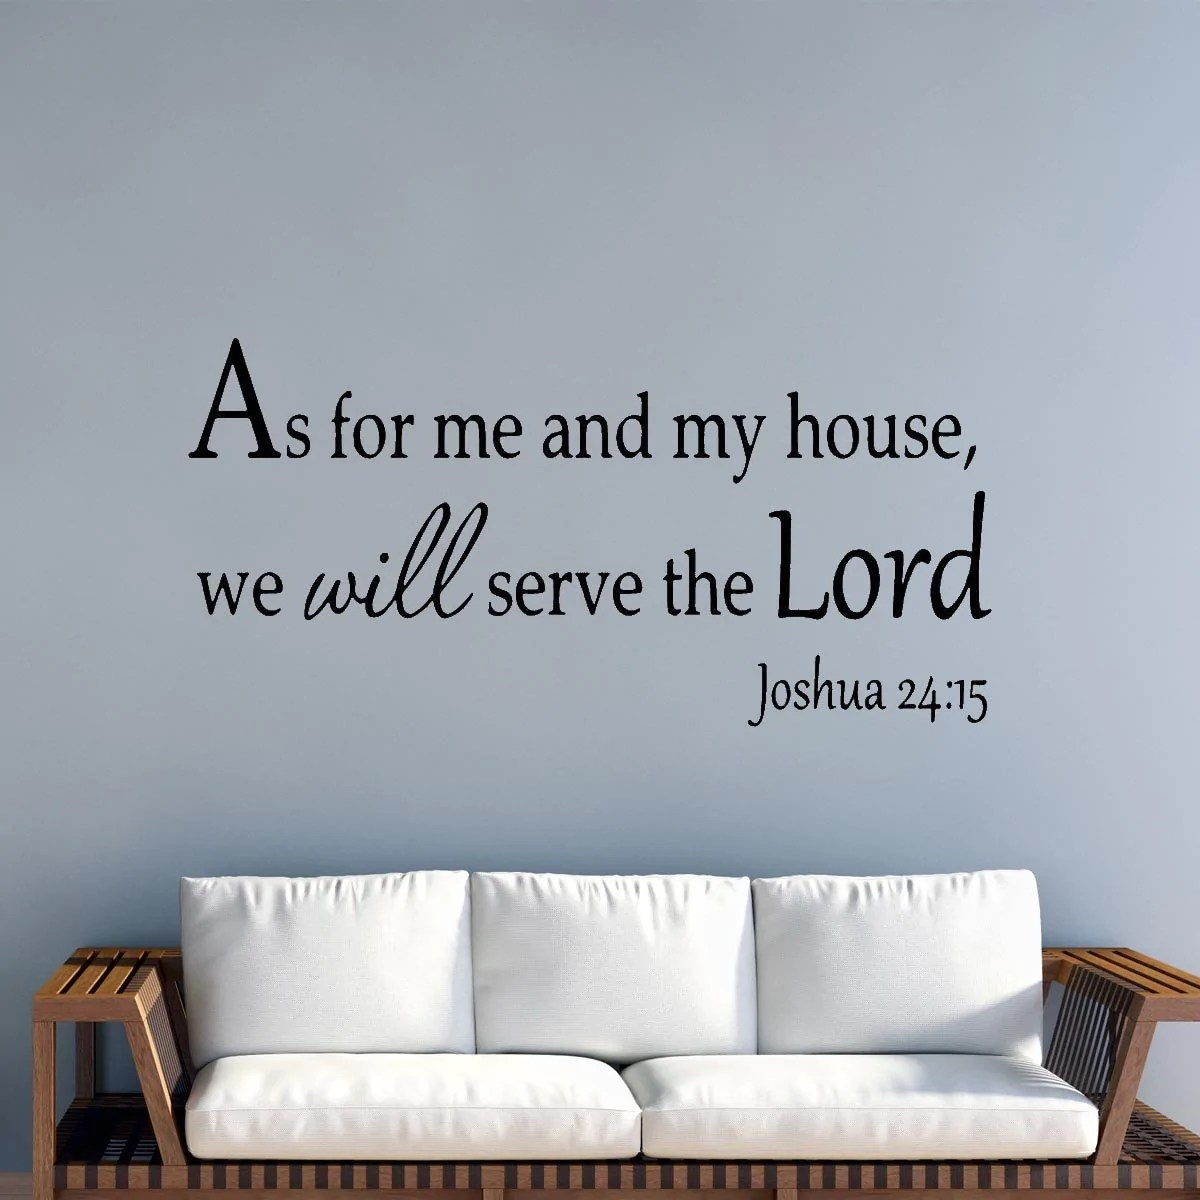 Quotes On Sofa Vwaq As For Me And My House We Will Serve The Lord Faith Wall Quotes Decals